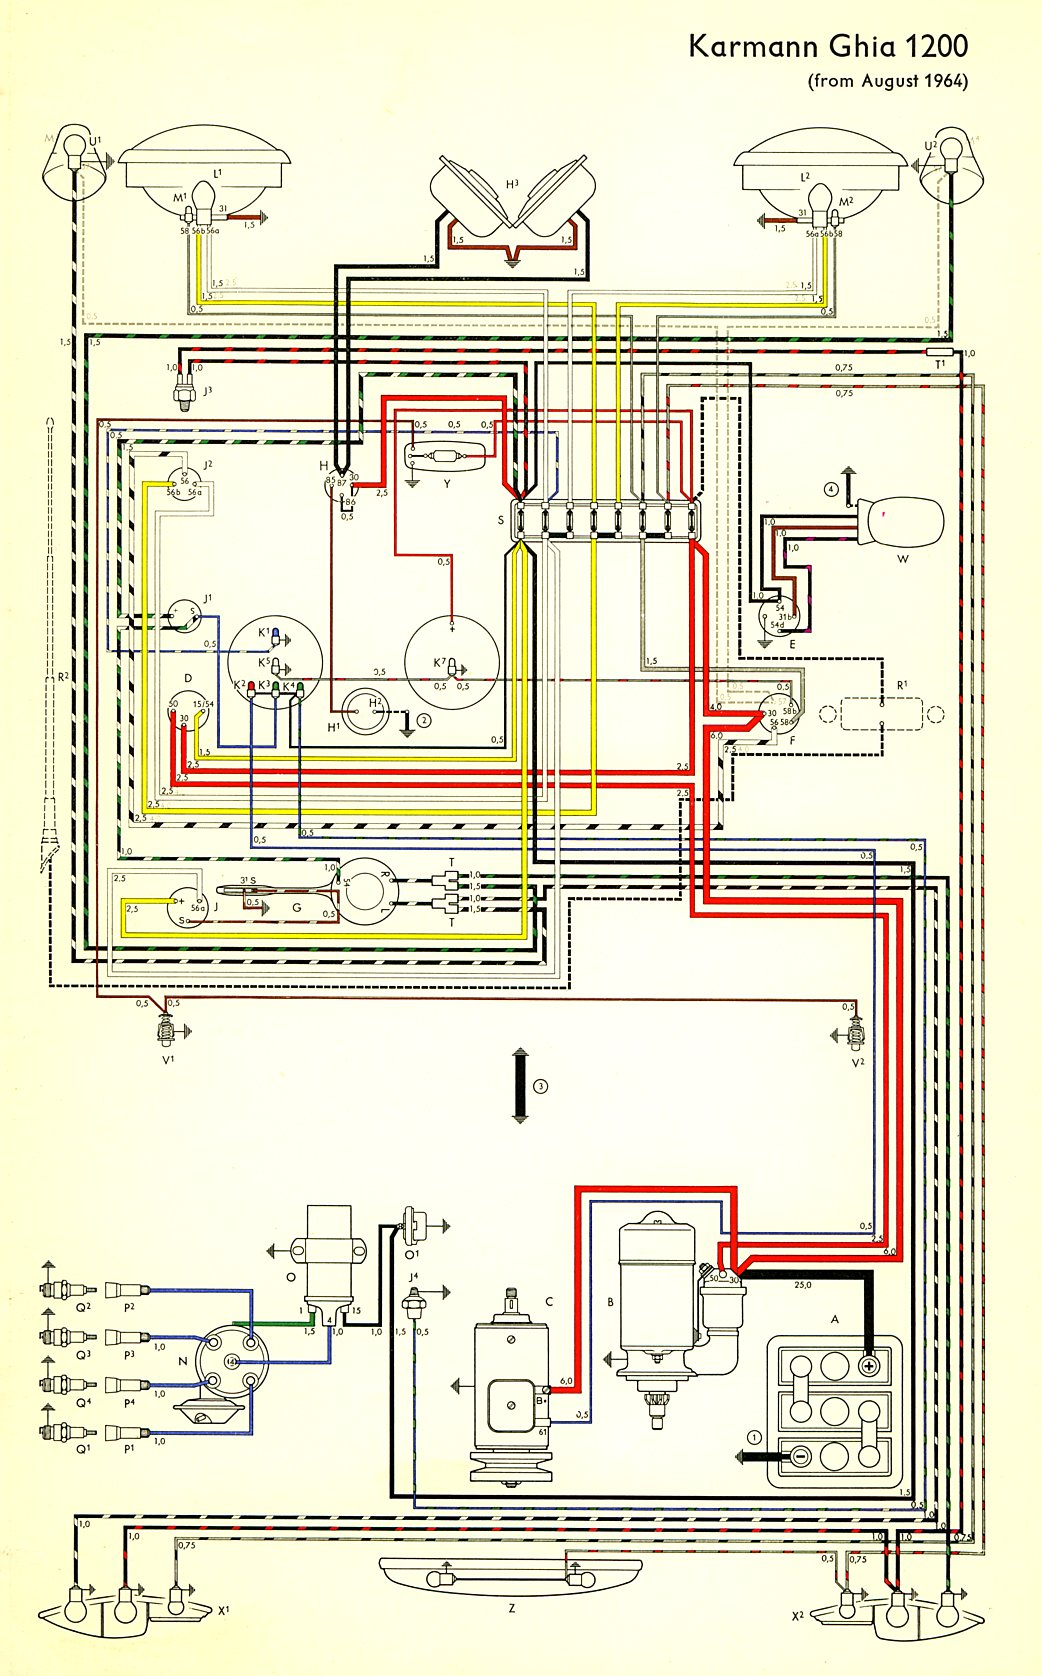 thesamba com karmann ghia wiring diagrams rh thesamba com 1971 nova wiring diagram for fuel gauge Fuel Gauge Wiring Diagram for 1971 Nova